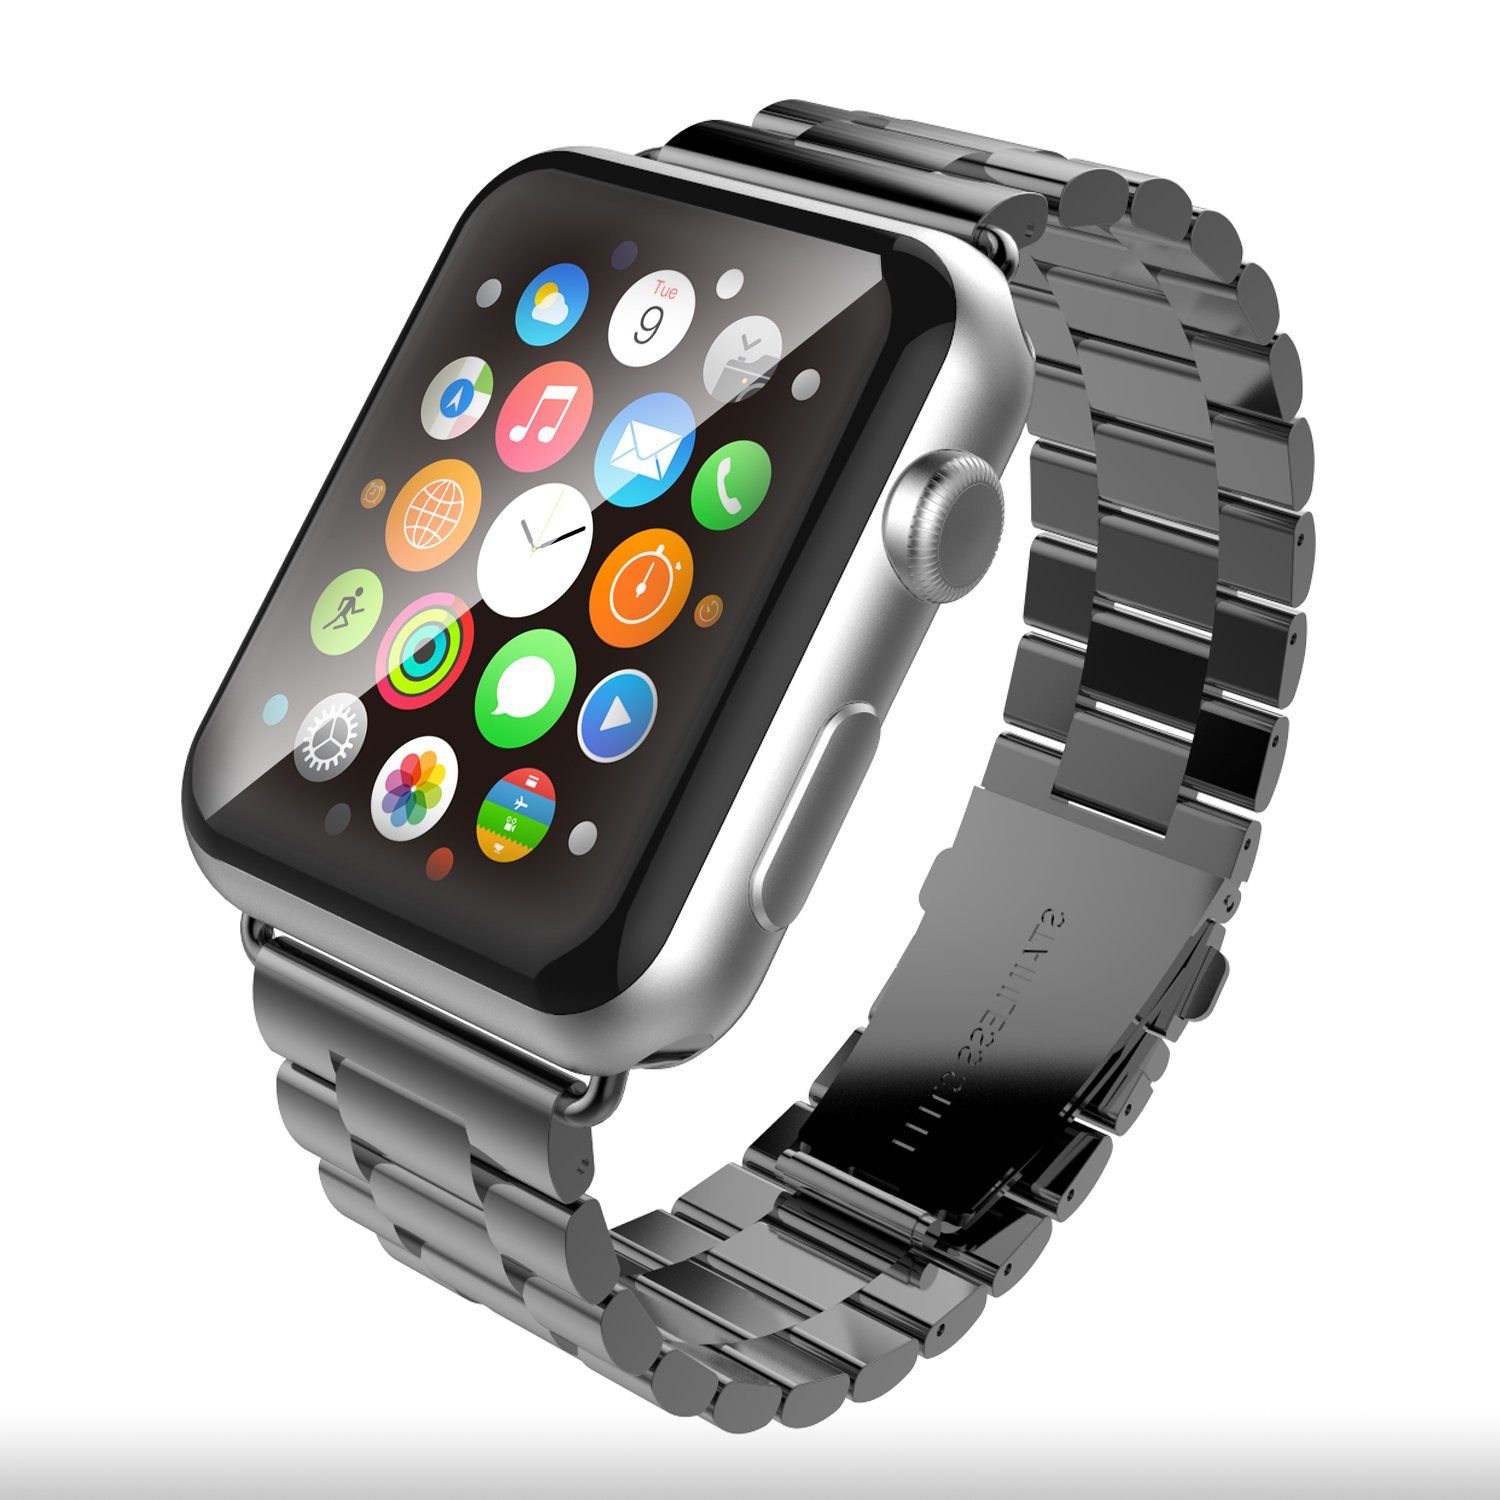 you watches need watch everything to i apple gadgets about faq orig primary know new macworld phone article the